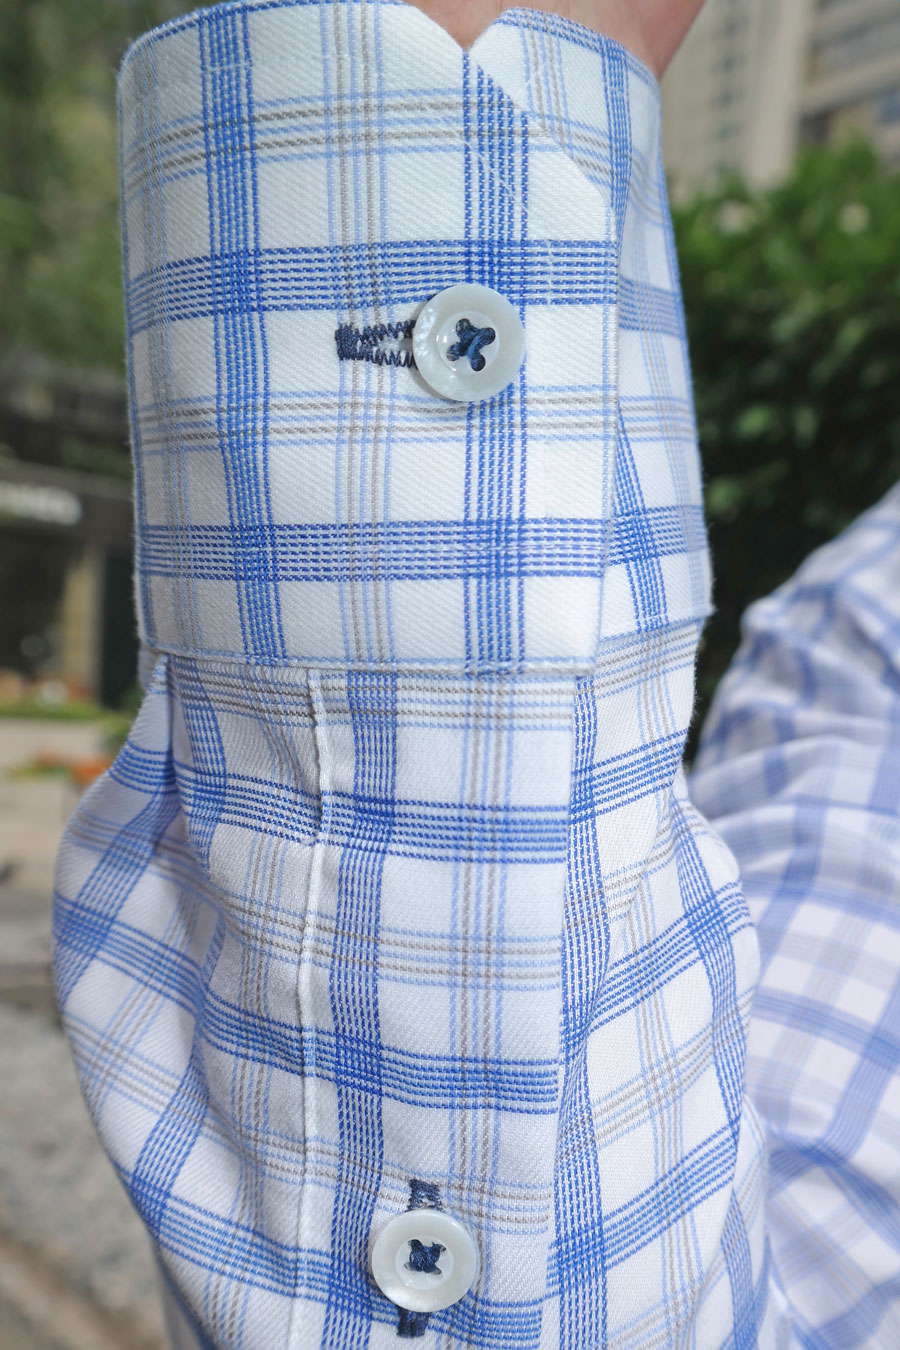 Blue-Grey-Bold-Check-With-Blue-Buttonholes-Custom-Shirt-By-Balani-chicago-900.jpg